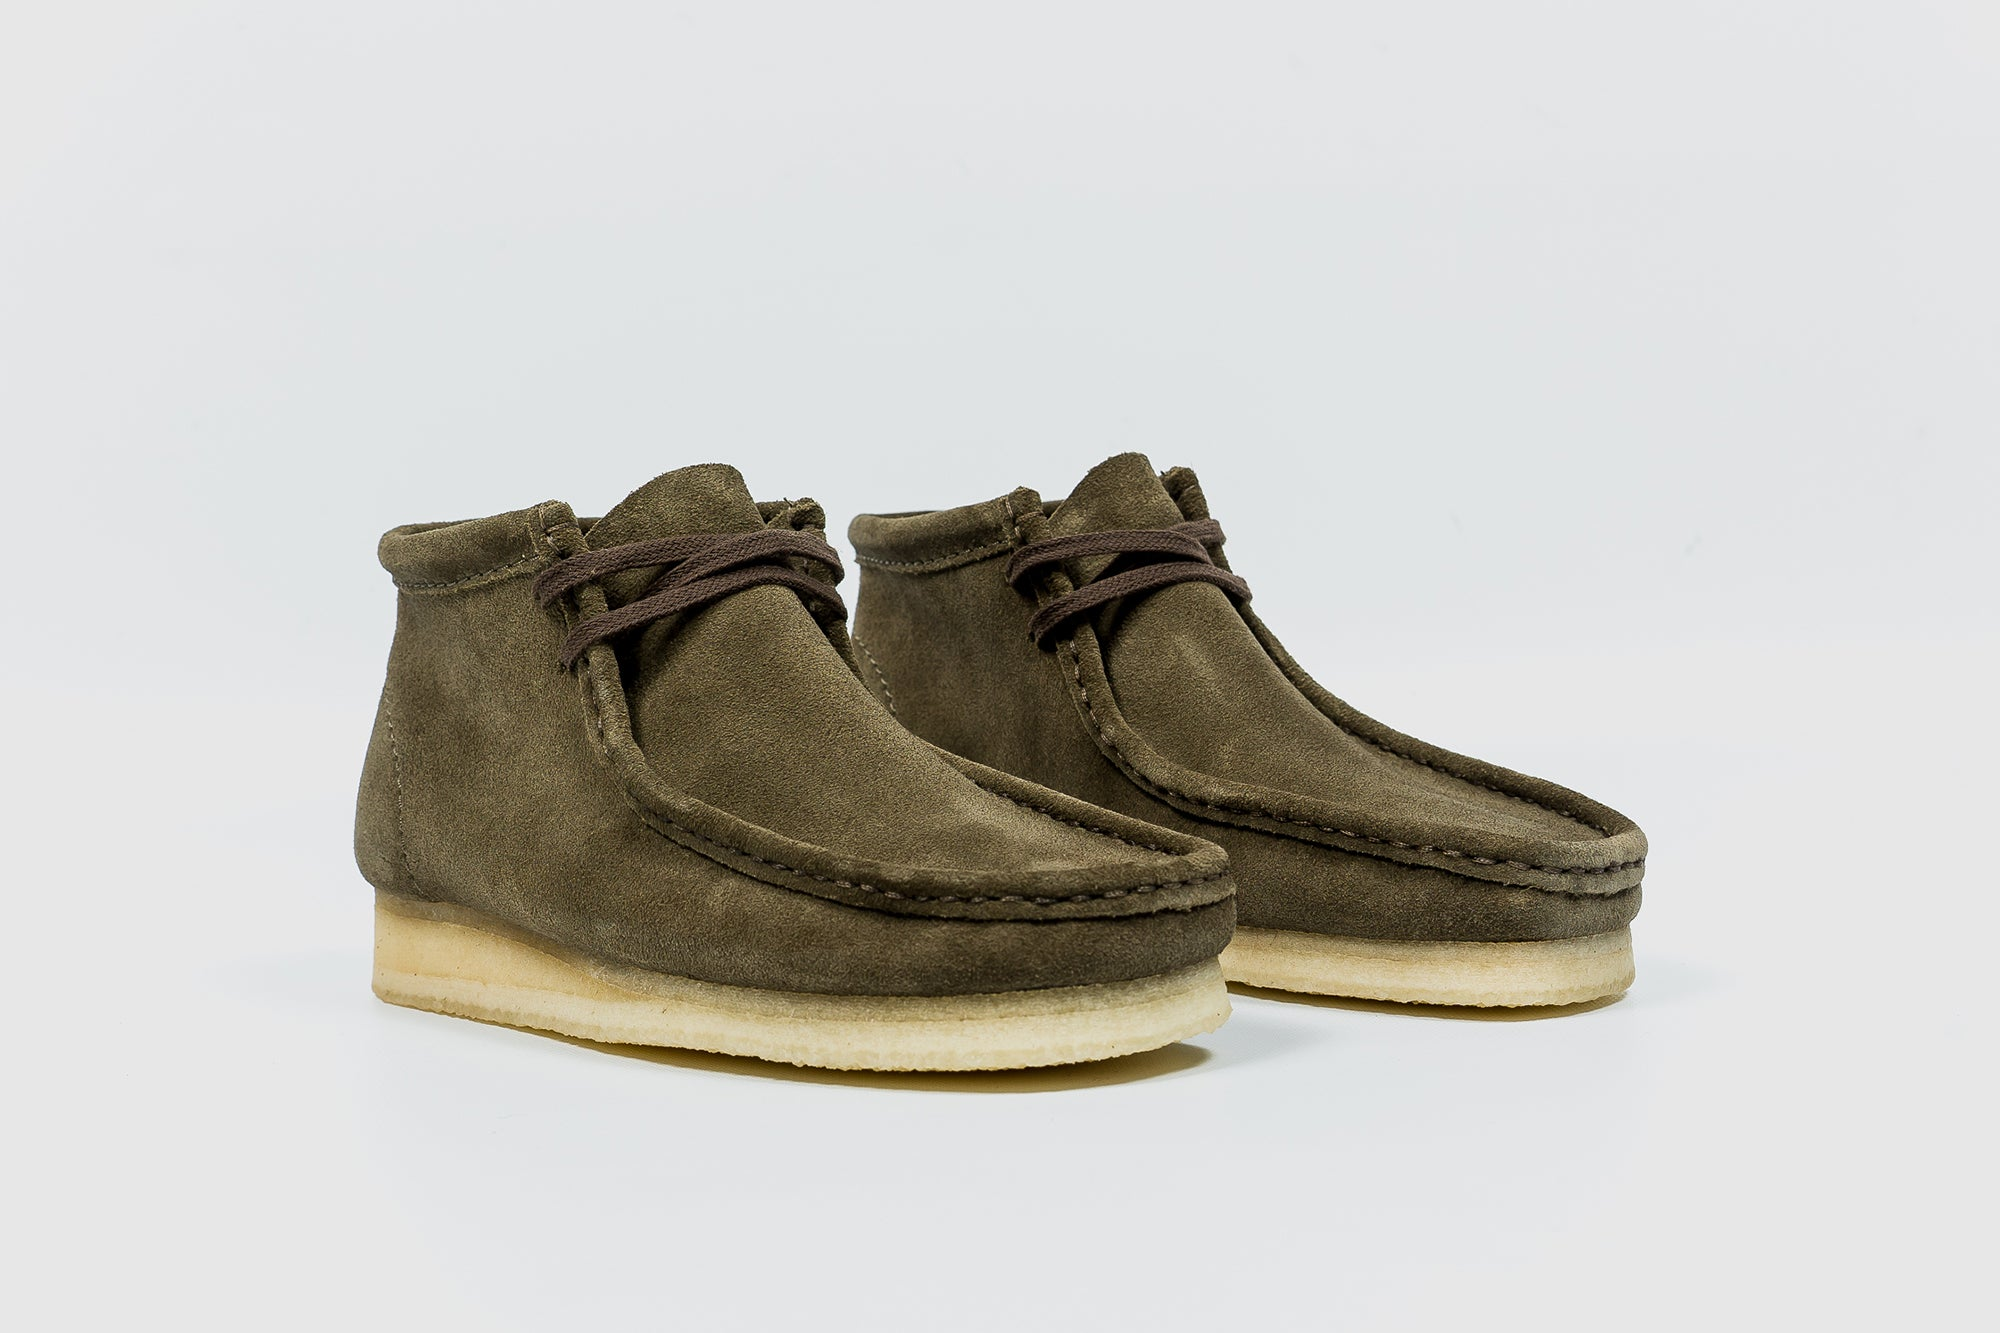 CLARKS WALLABEE BOOT – PACKER SHOES